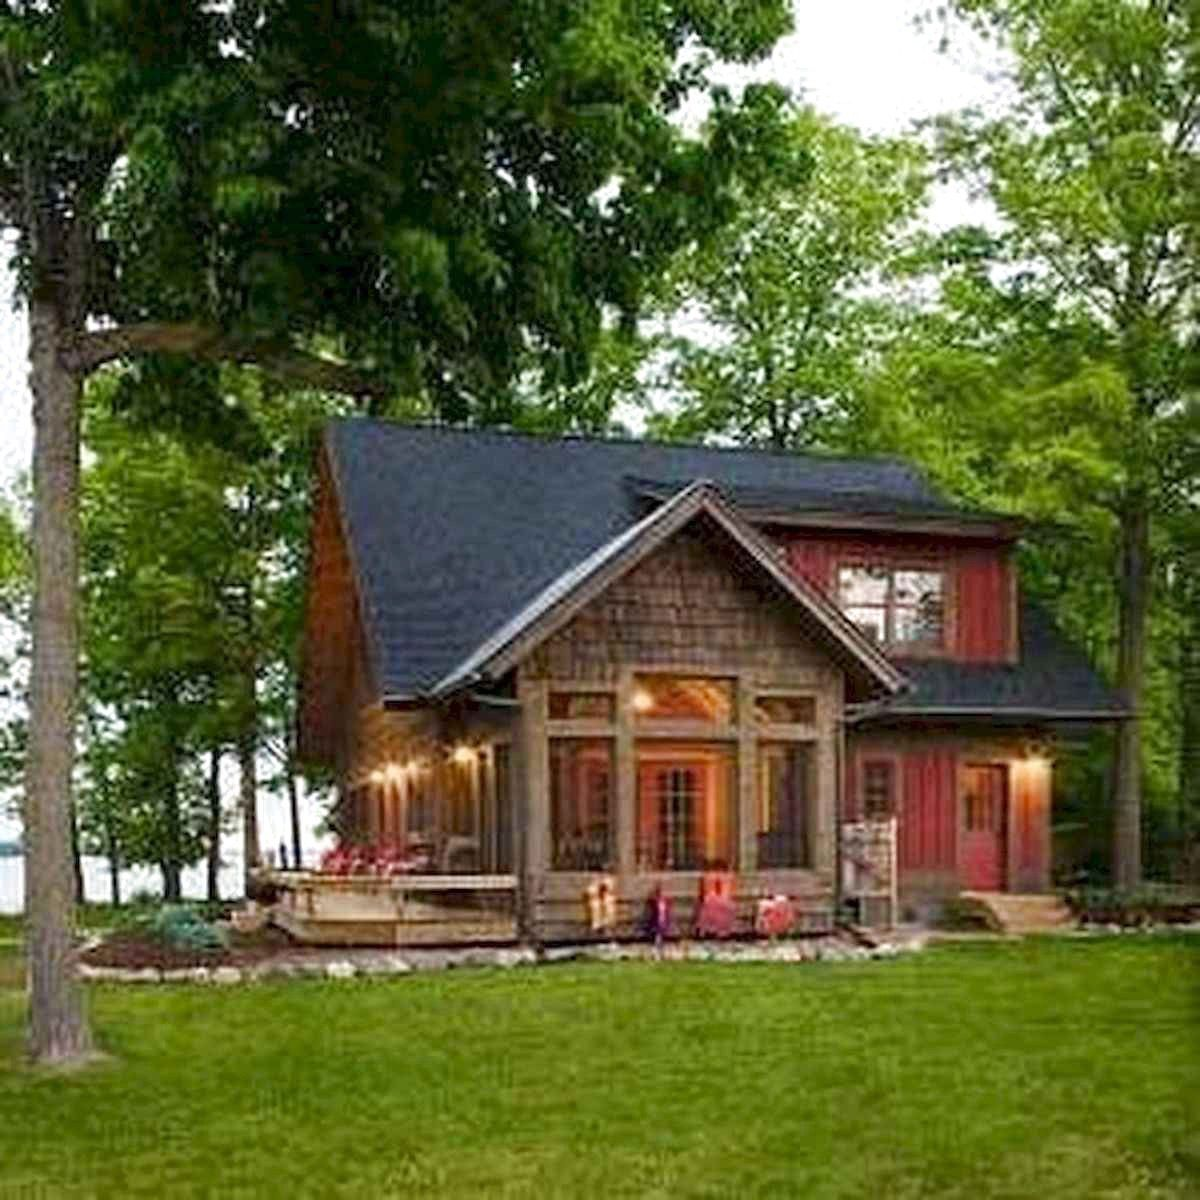 71 Favourite Small Log Cabin Homes Design Ideas Home Garden Cottage Design Plans Cabin Design Cottage House Plans